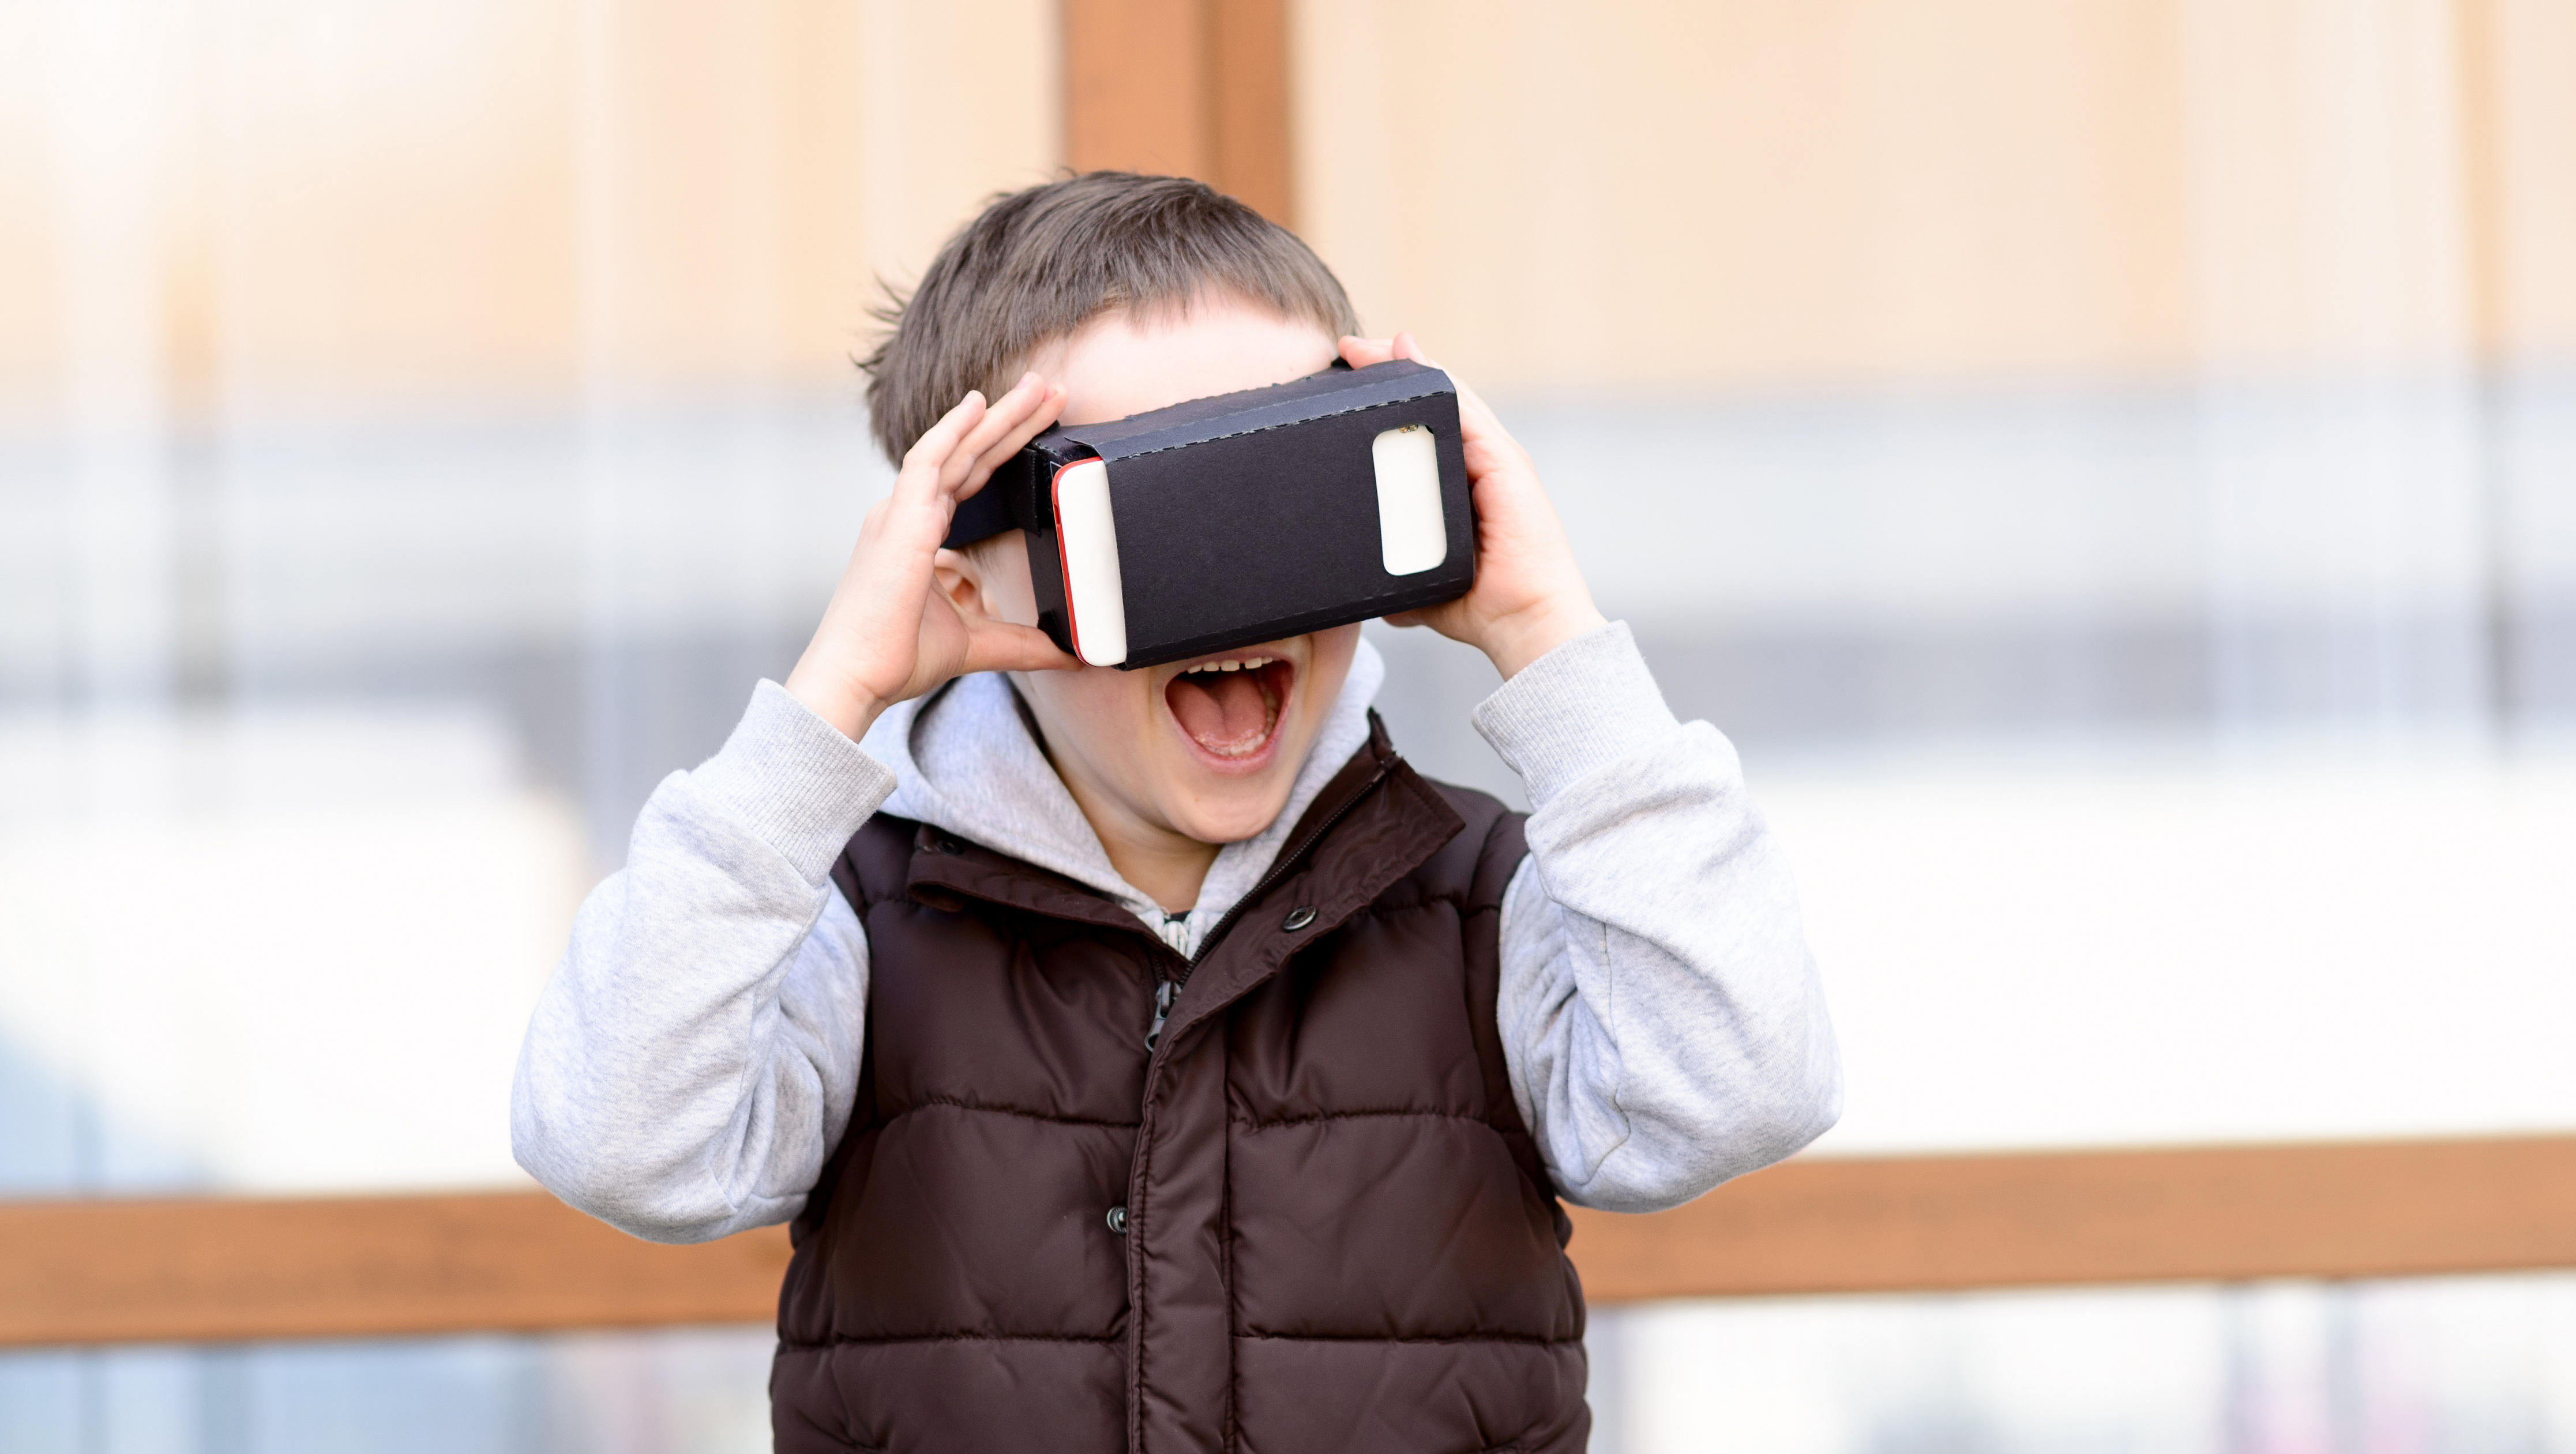 173e6bb13f92 Are virtual reality headsets safe for kids  - CBS News